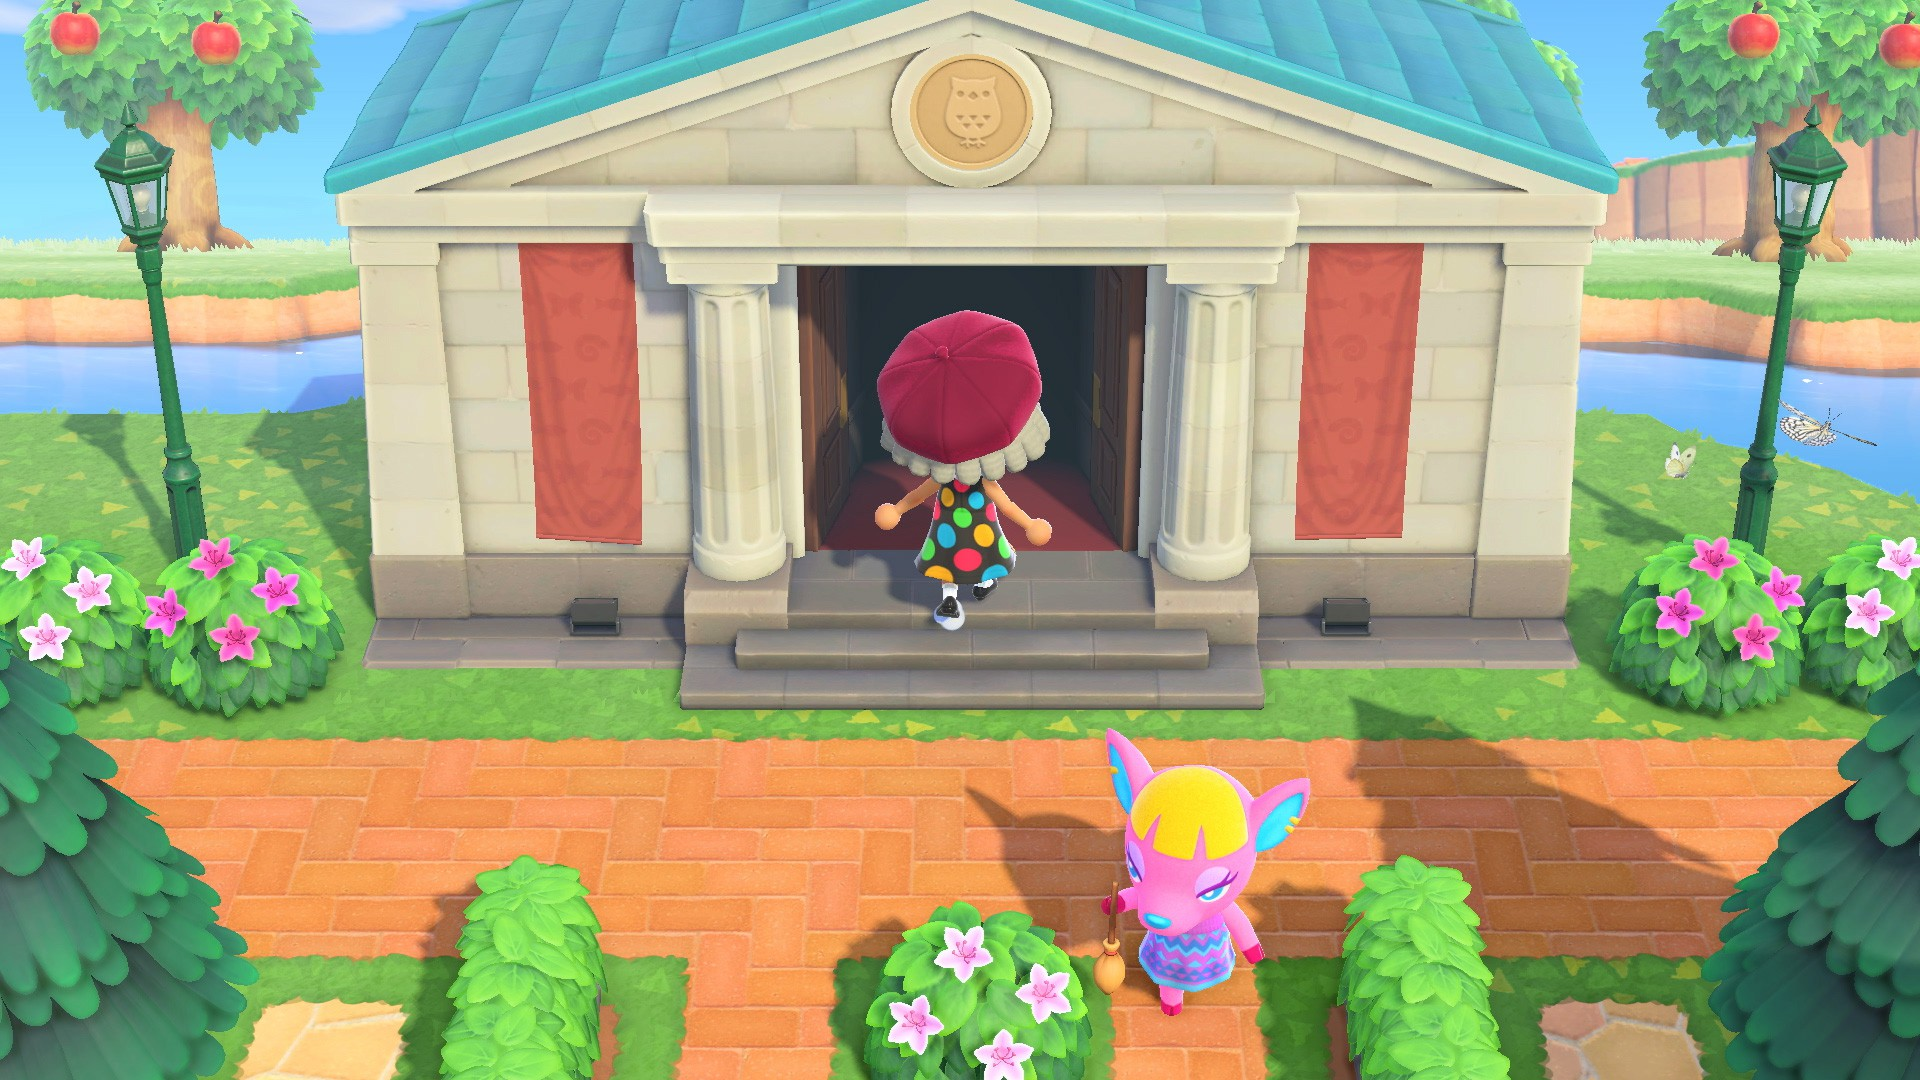 5 Small Details You Might Have Missed In The April Animal Crossing